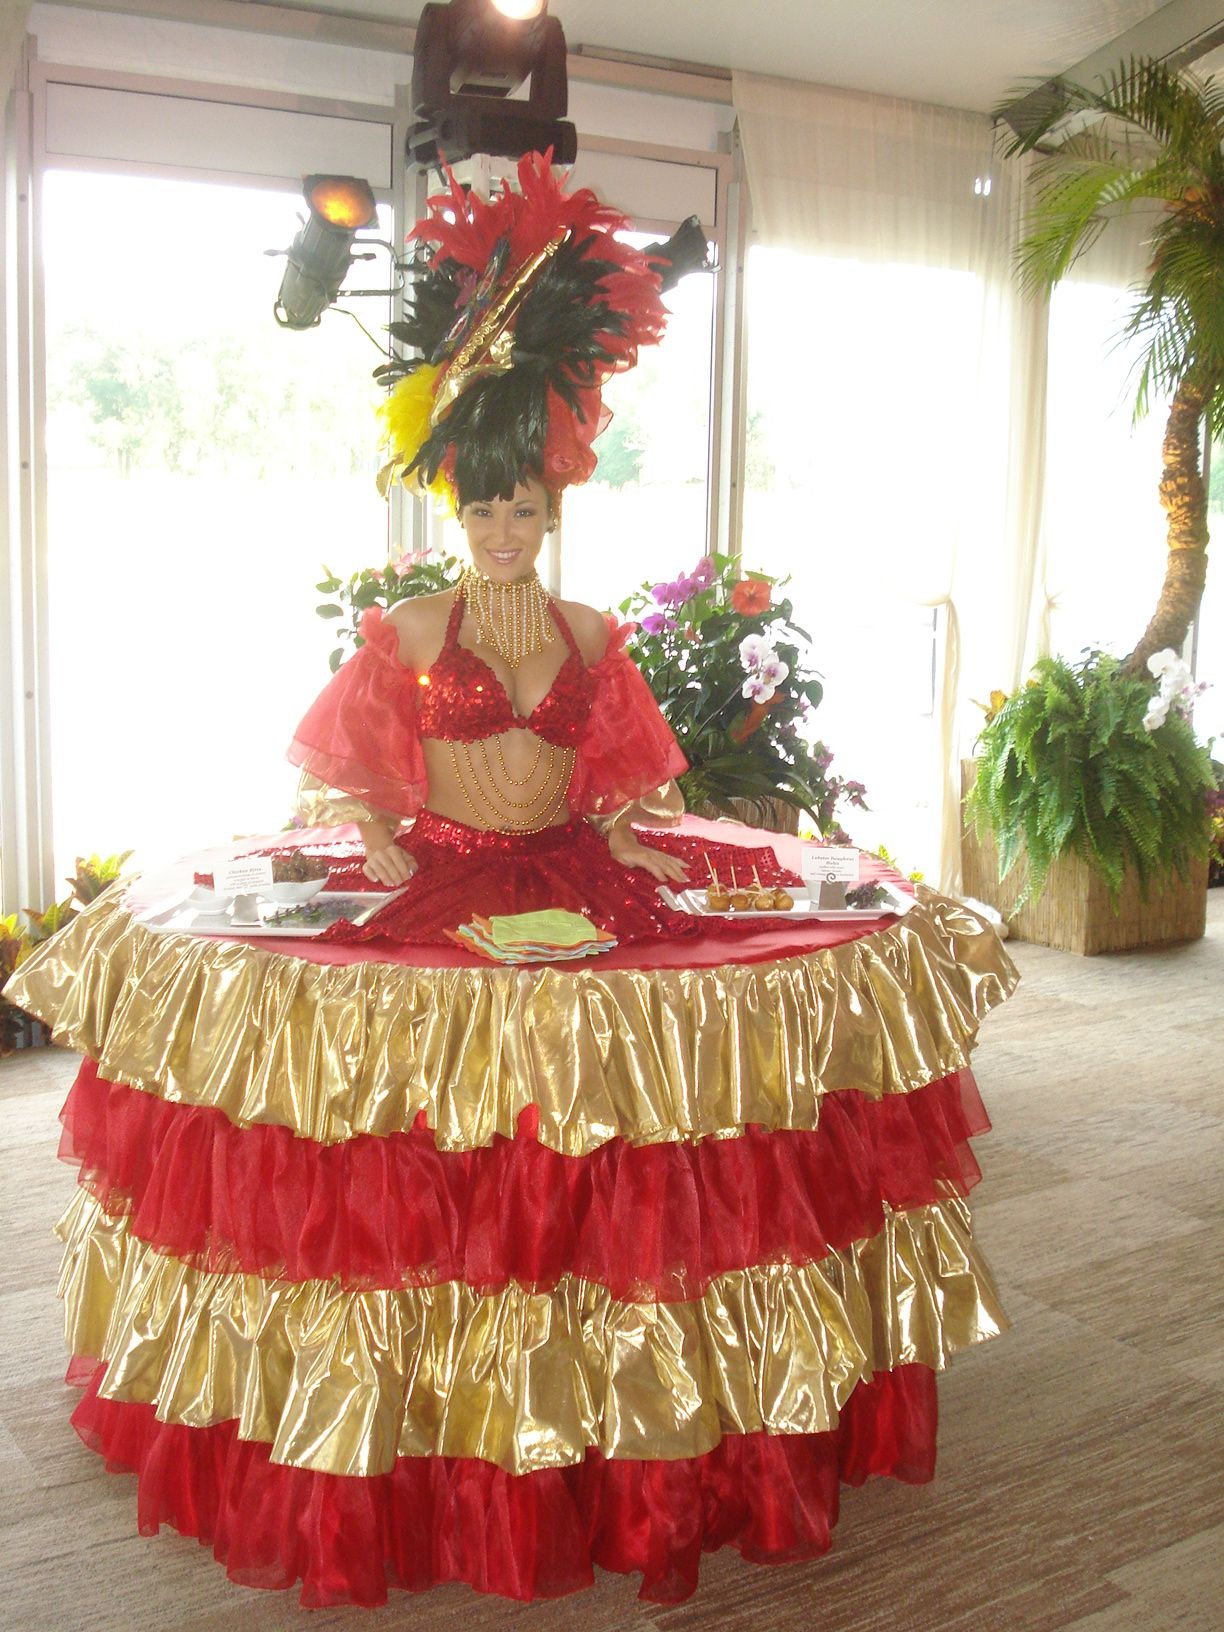 Caribbean Style Strolling Table Diva By J & D Entertainment